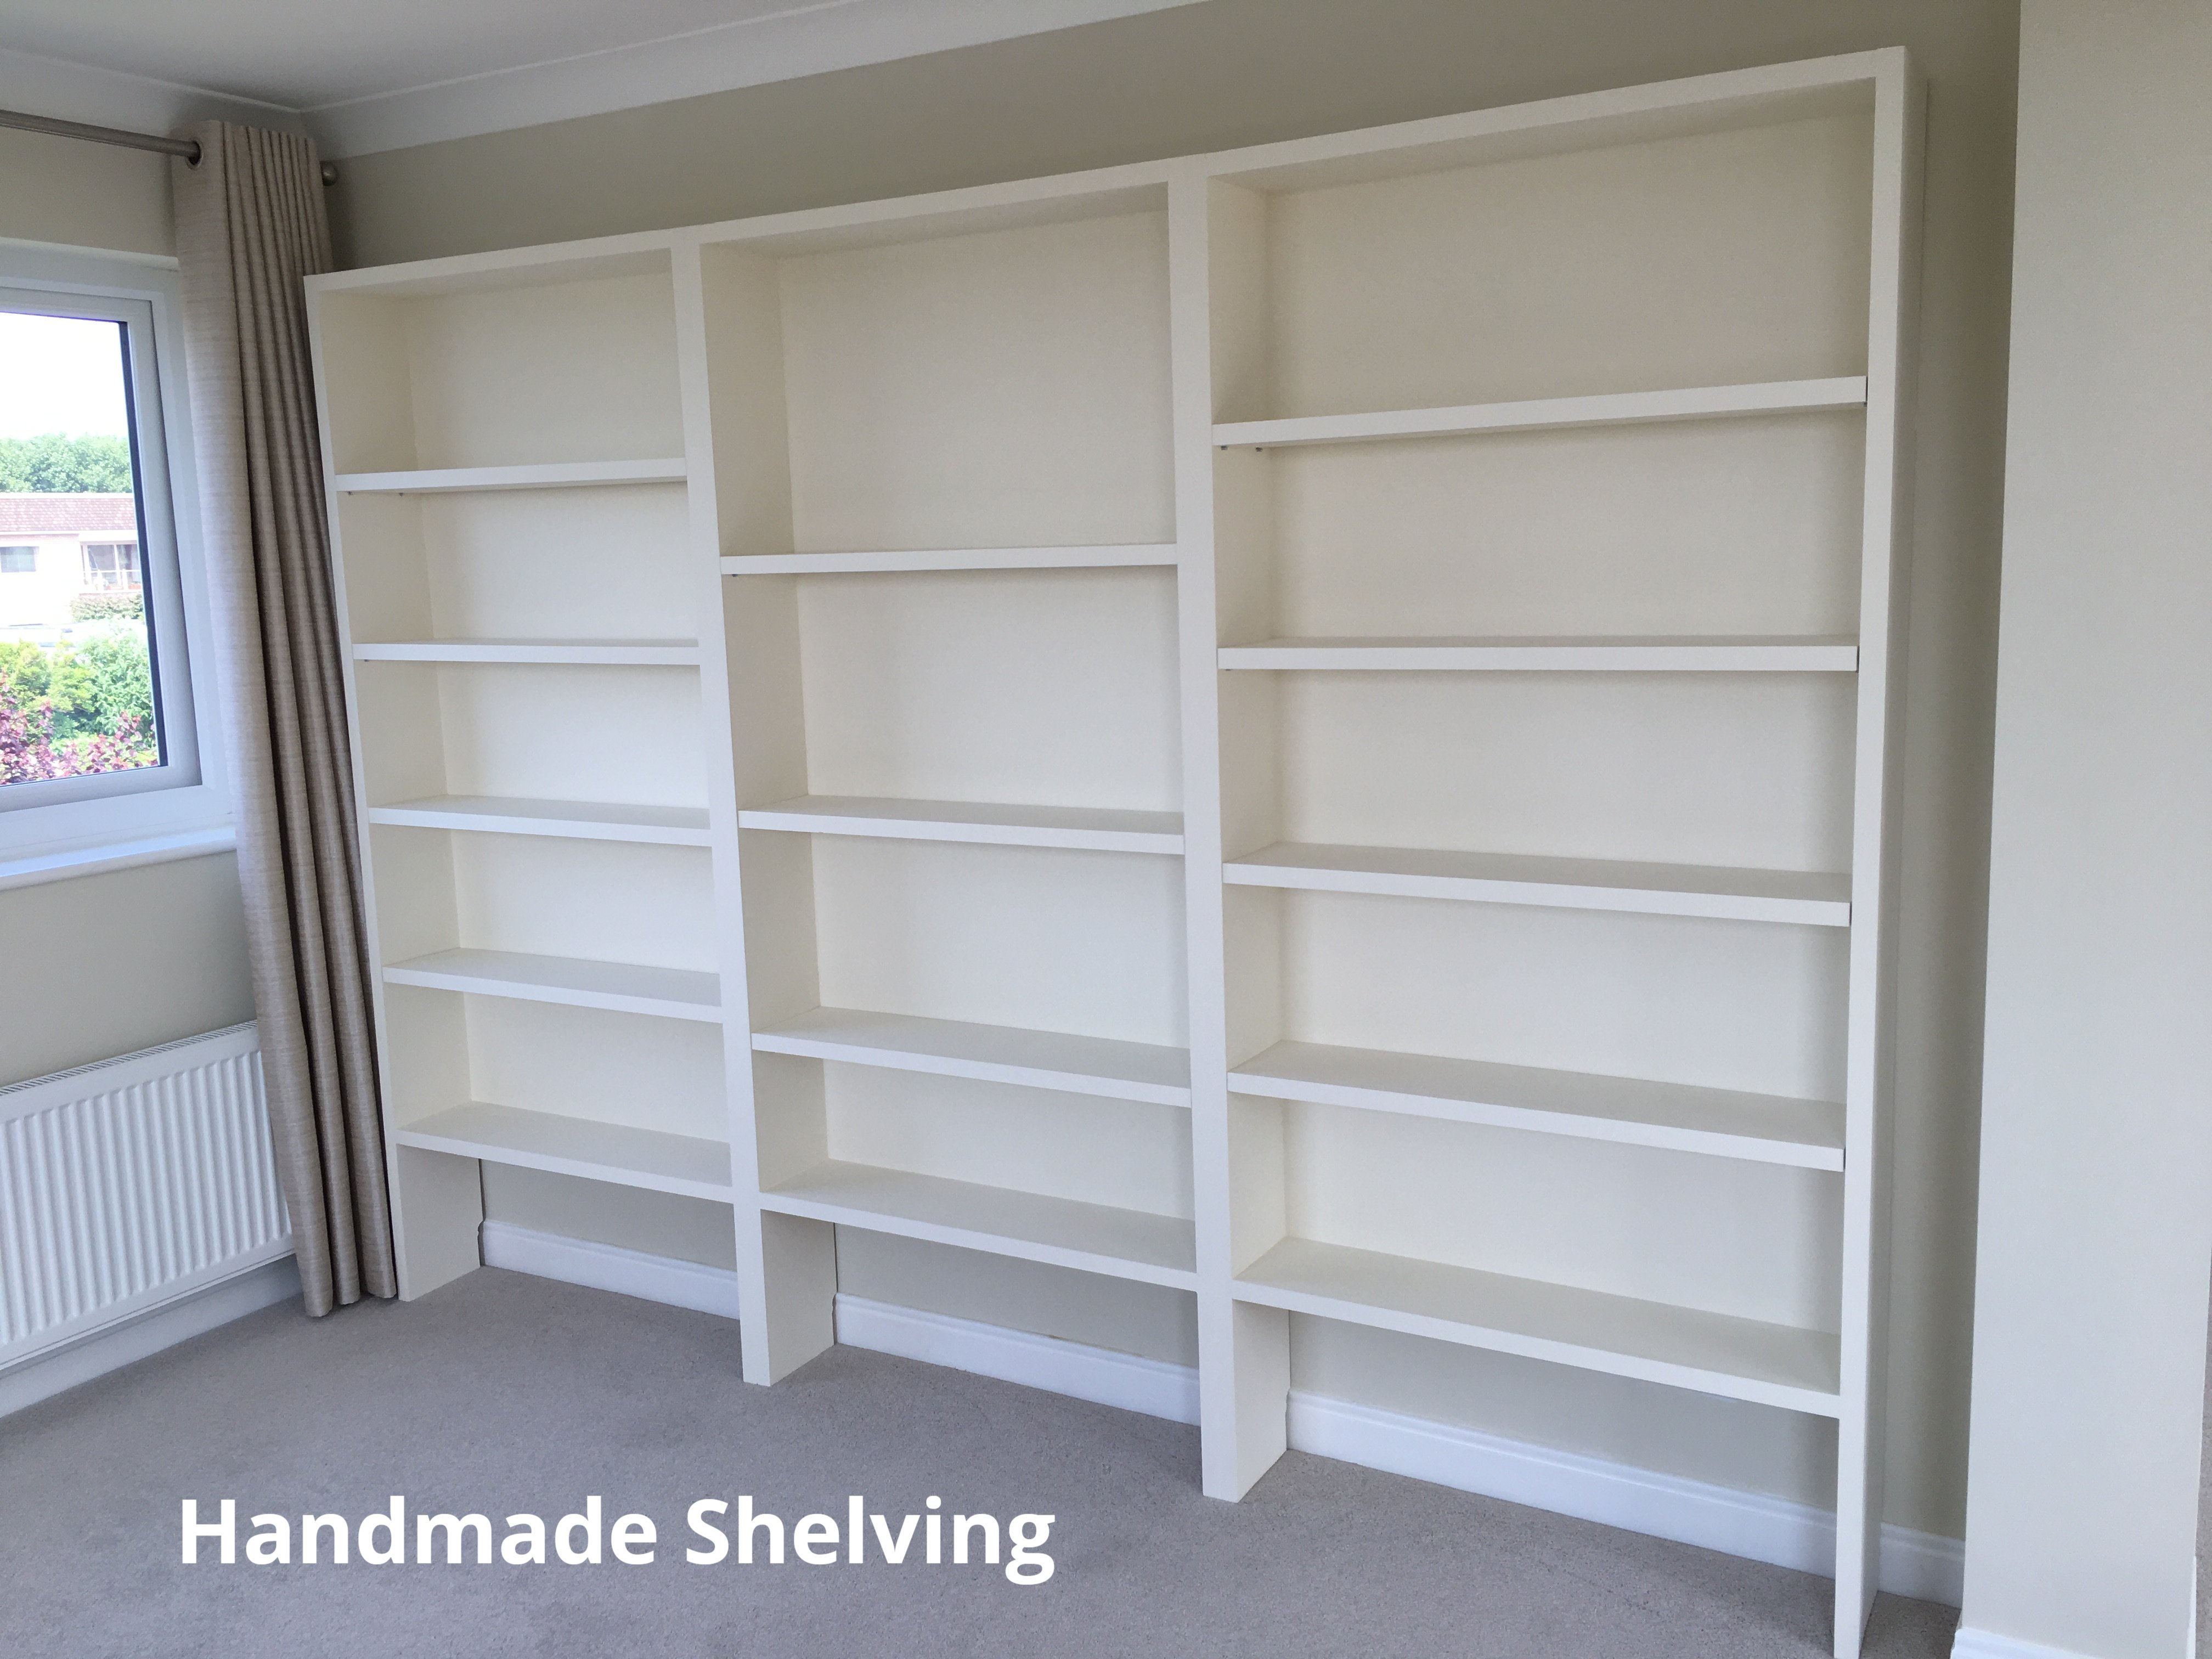 Book Shelves Hand Made in Wirral